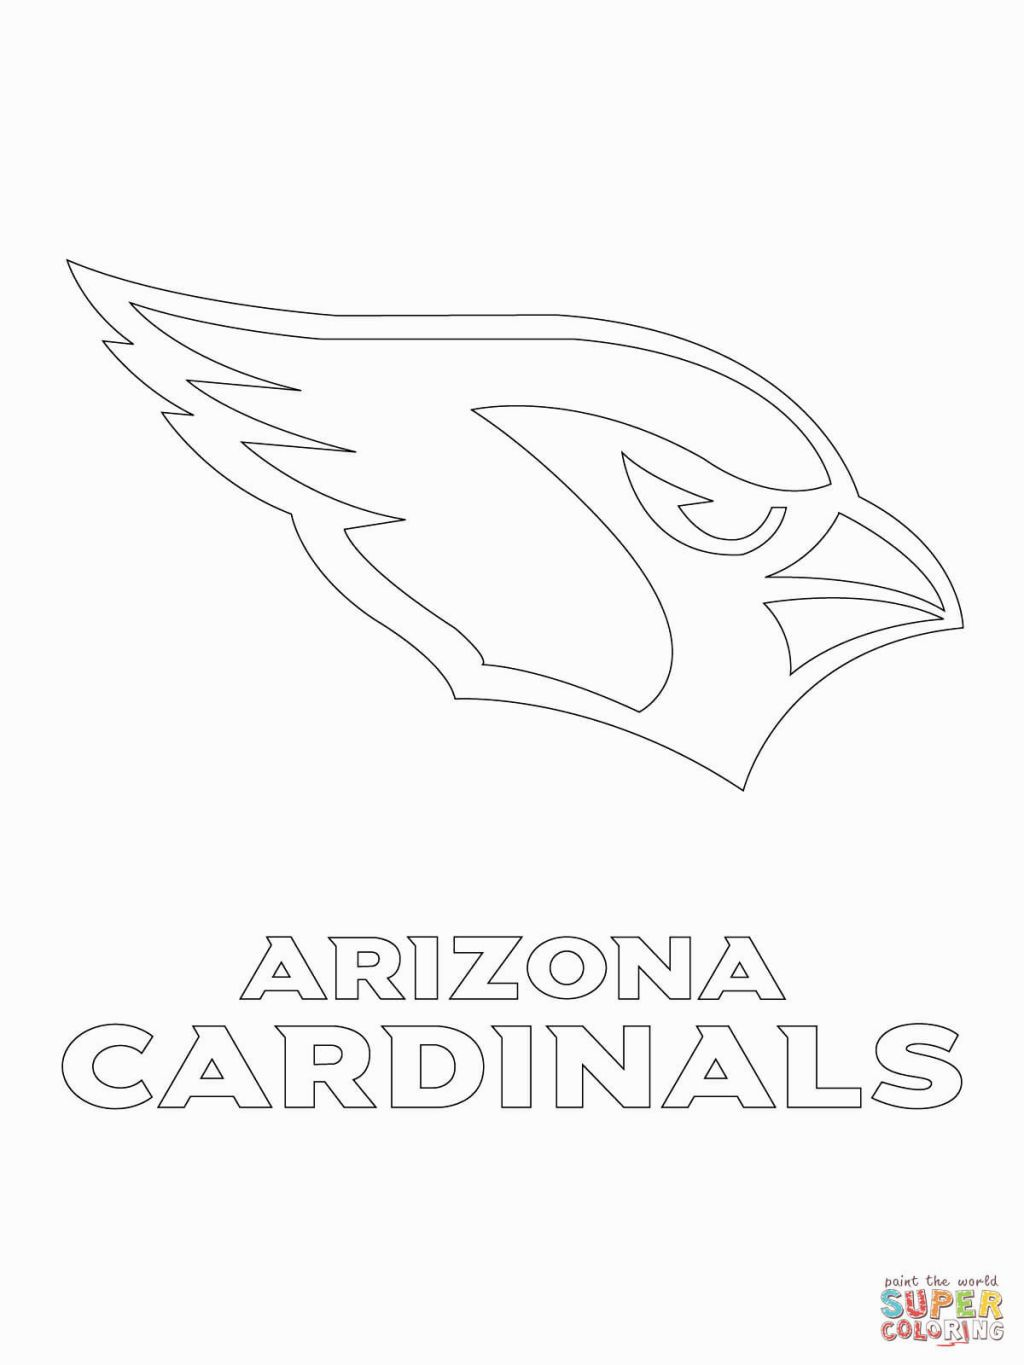 Nfl Logos Coloring Pages Football Coloring Pages Arizona